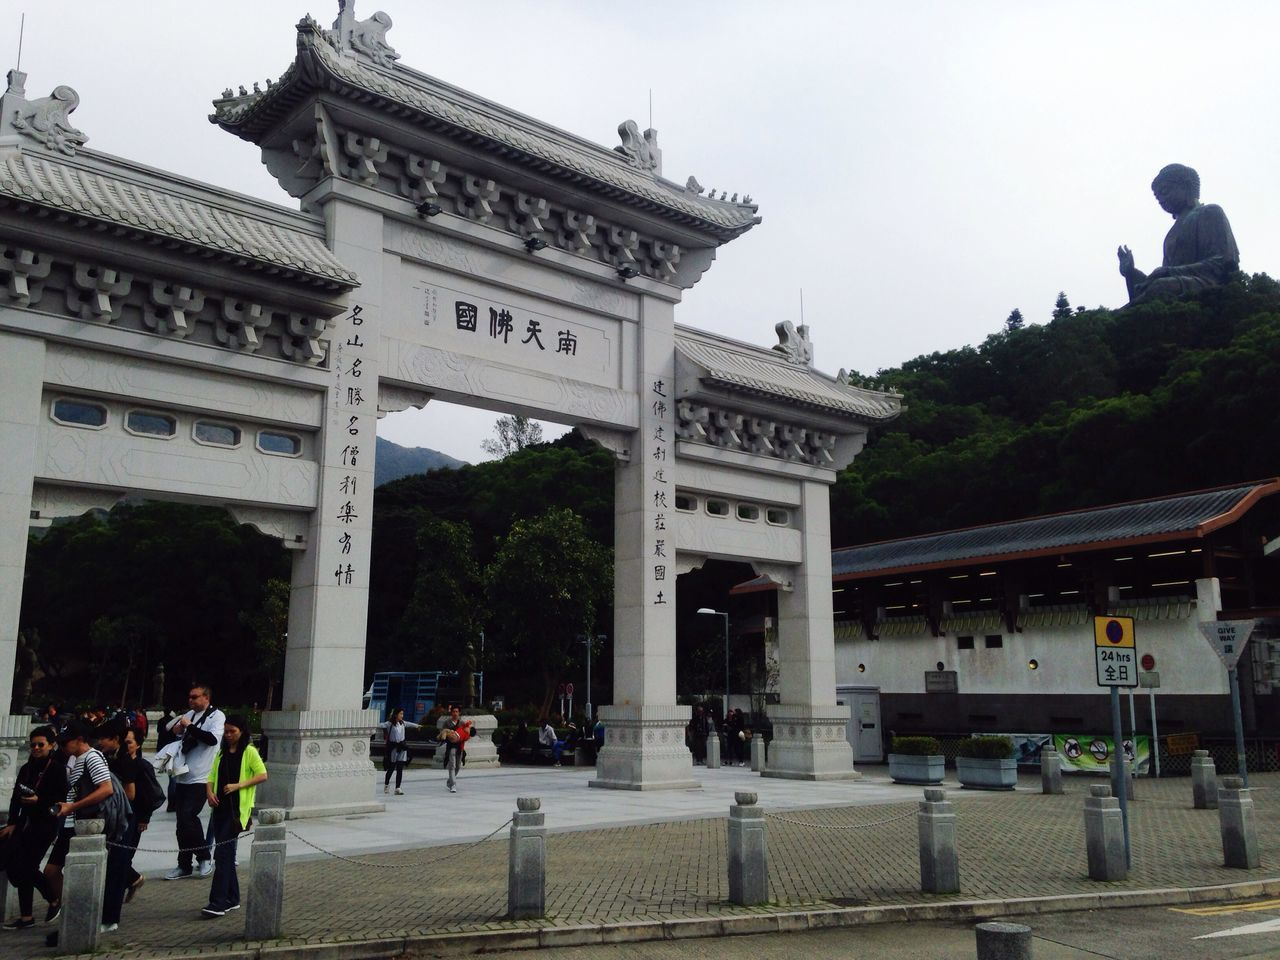 Travel and perspectives. Architecture Built Structure Sky Travel Destinations Day Real People Large Group Of People Building Exterior Architectural Column Travel Outdoors Low Angle View Men Women Tree Sculpture People Adult Heritage Religion Place Of Worship Buddha Buddhism HongKong Lantau Island